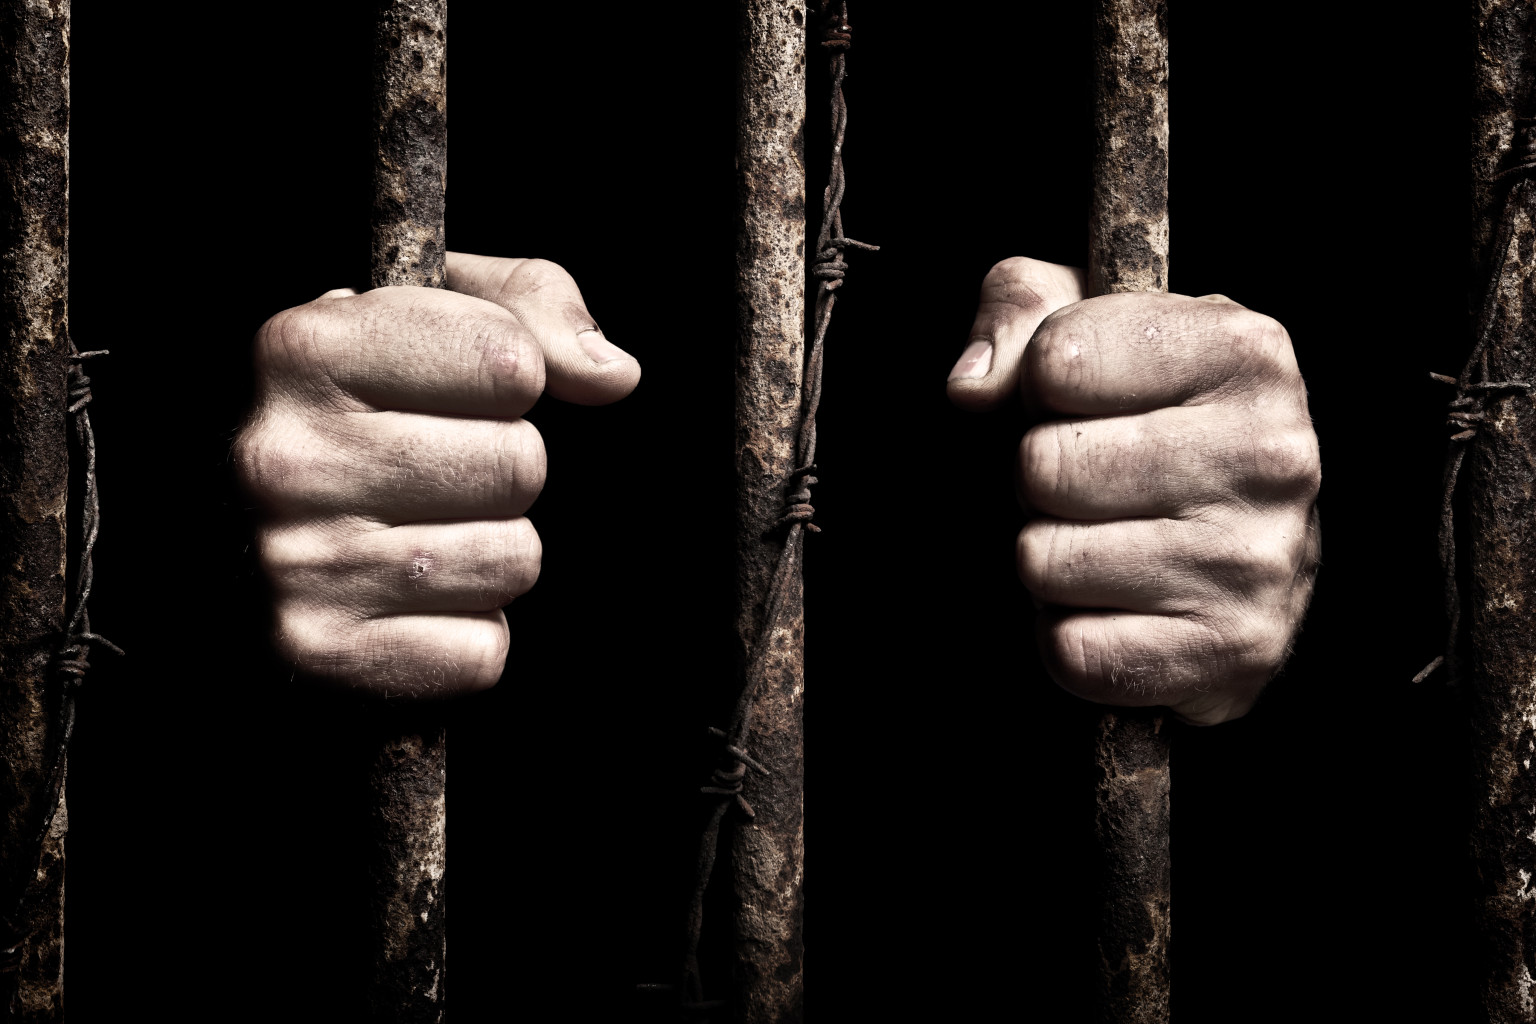 hands behind bars in prison